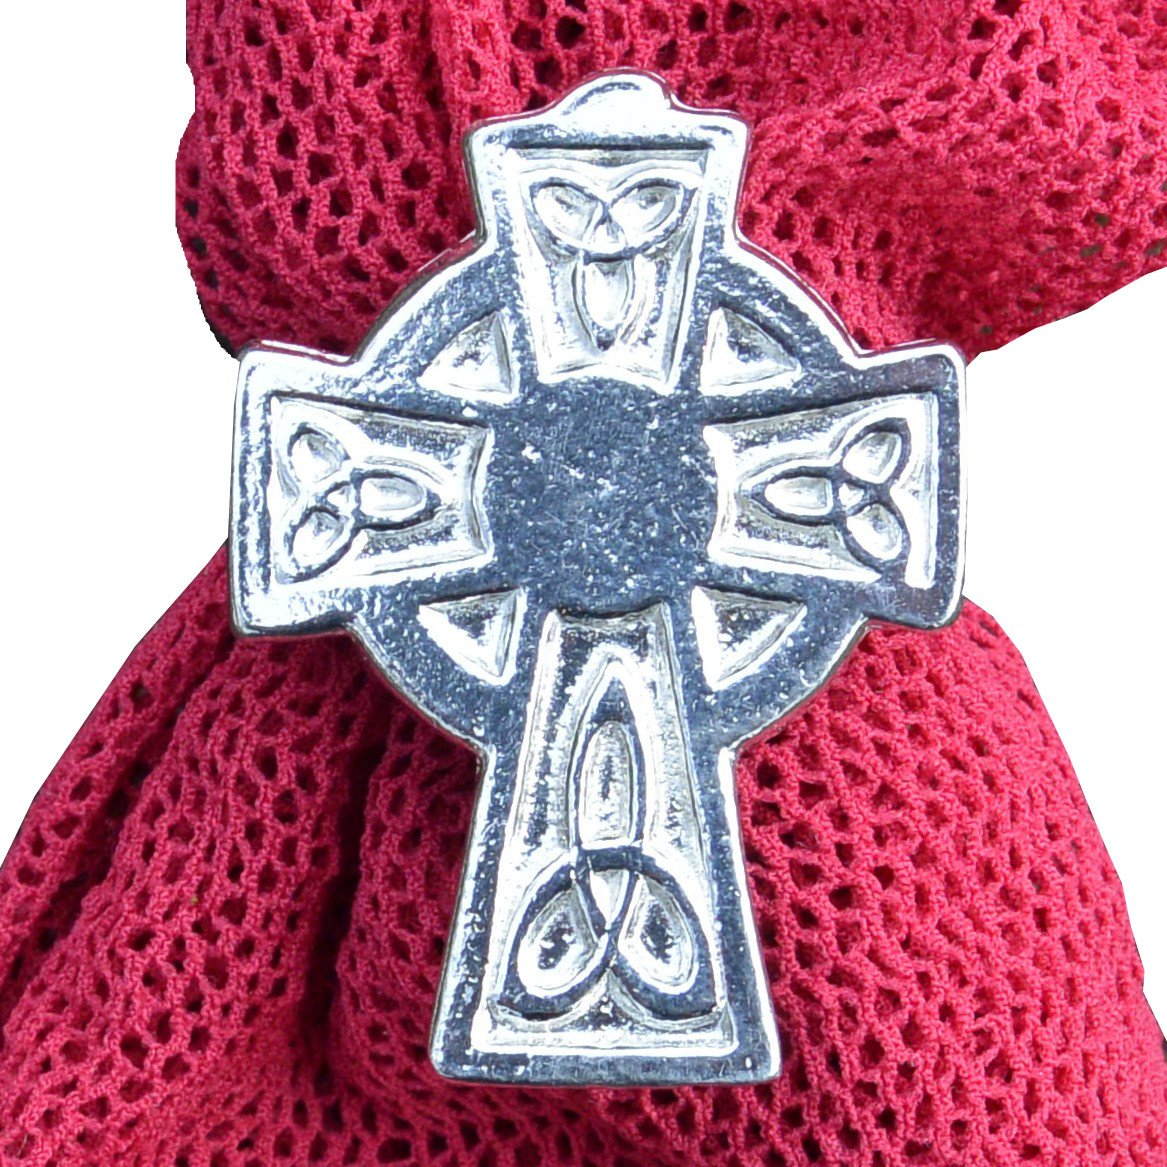 Luxury Fine Pewter Bathgate Celtic Cross Scarf Ring, Handcast by William Sturt